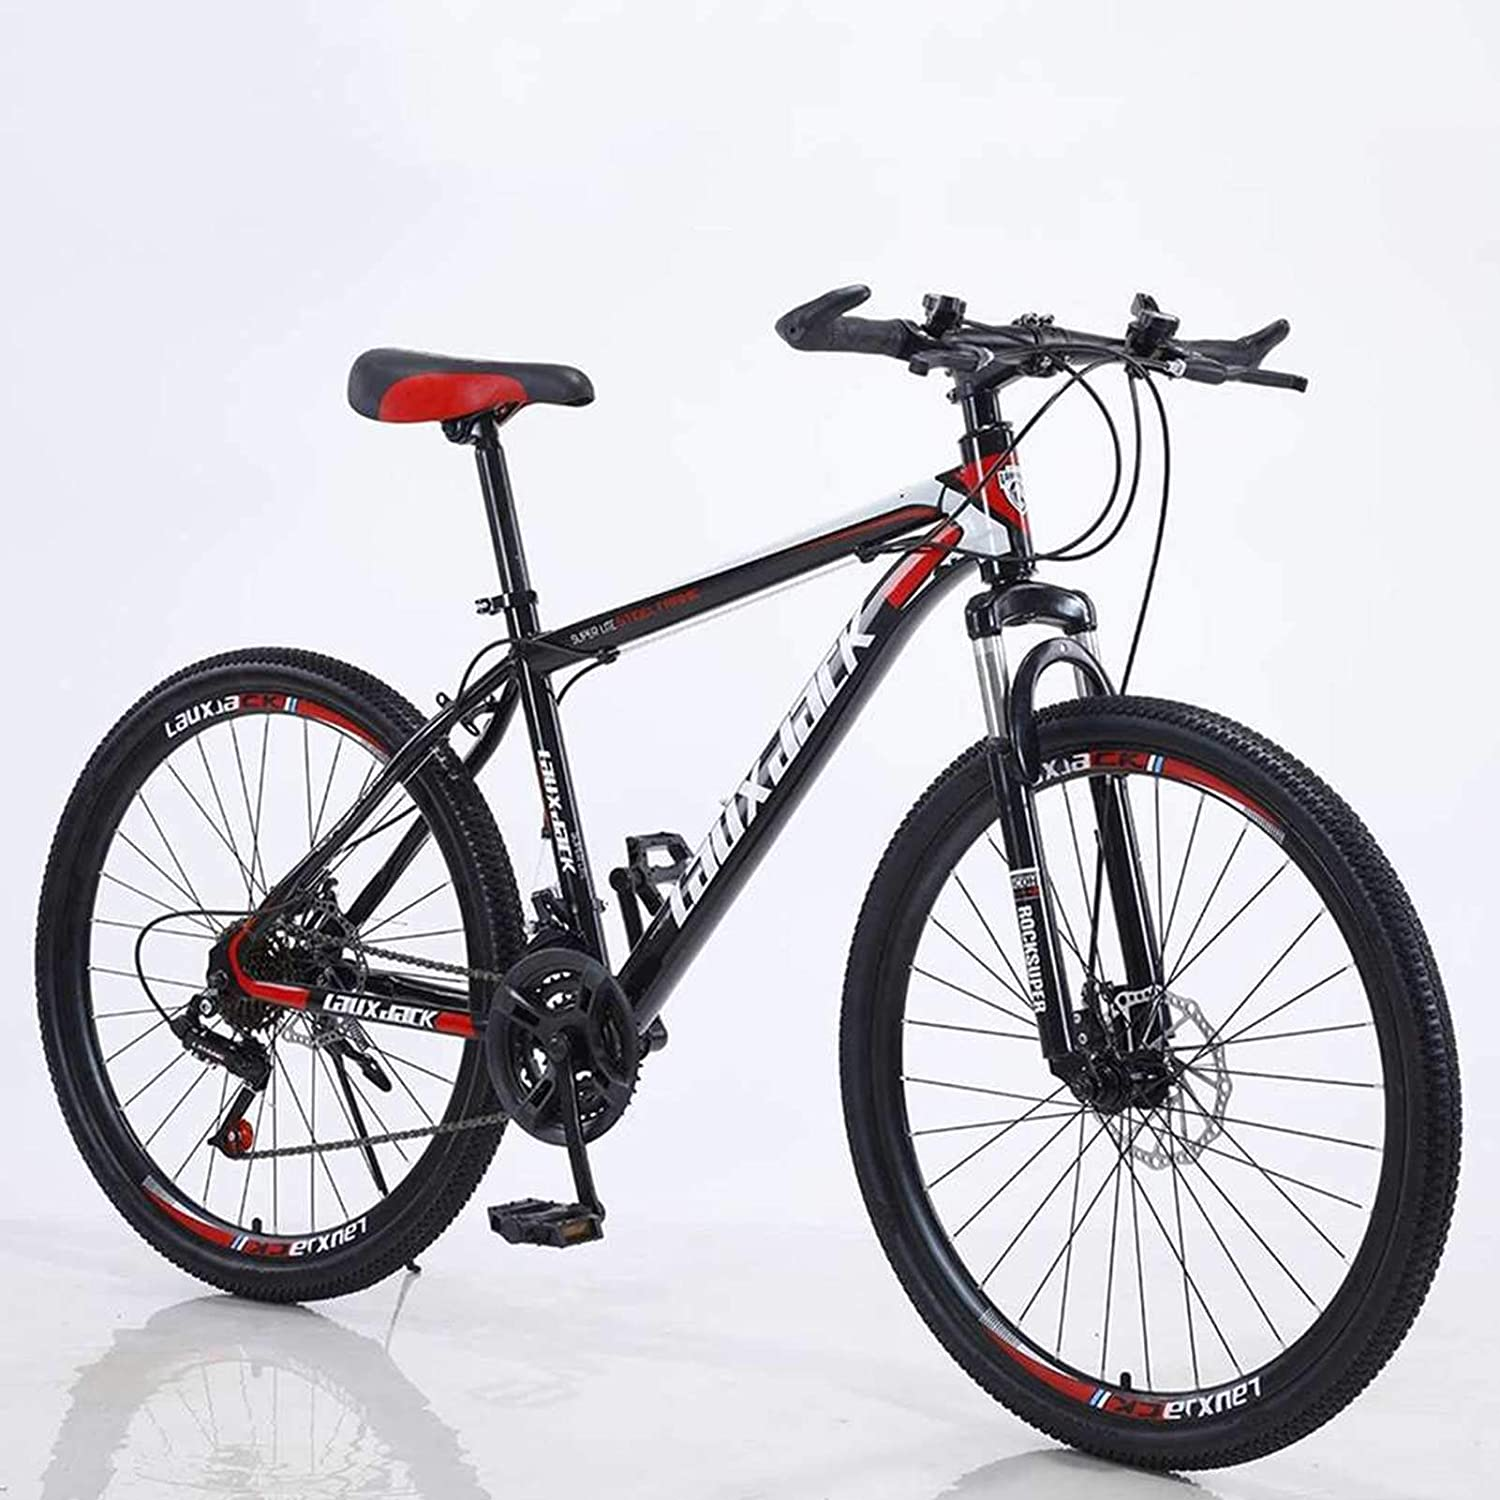 YUEBM Mountain Bike Outdoor Max 75% OFF Save money Exercise 21 for Women Variable Men